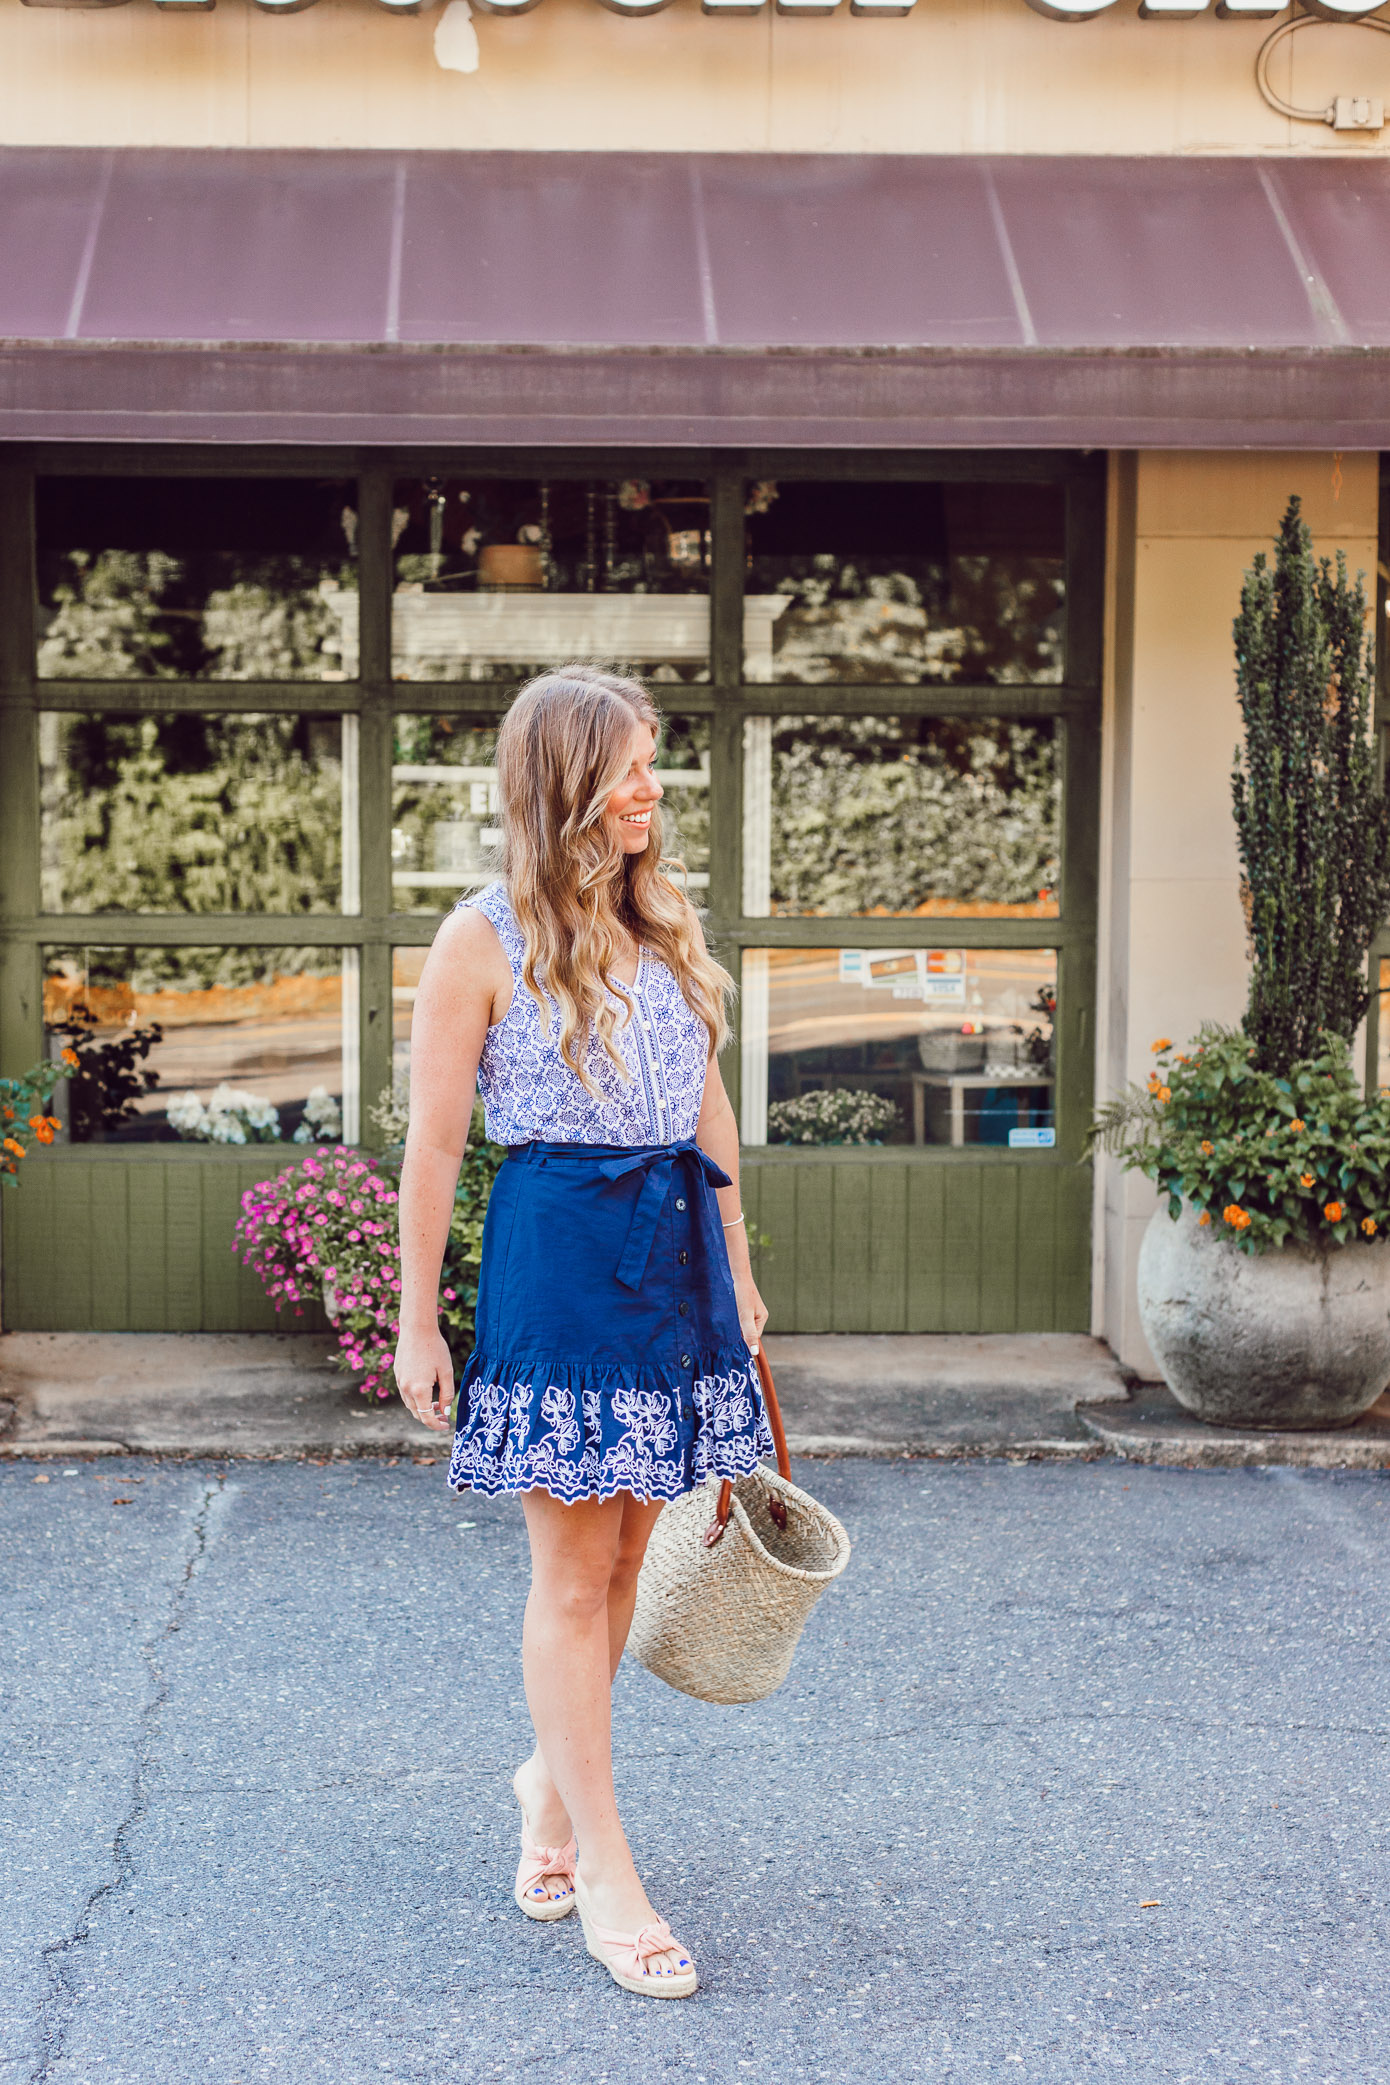 Summer Blues: Favorite Blue and White Pieces for Summer | Navy Embroidered Skirt and Geometric Tank styled on Louella Reese Life & Style Blog